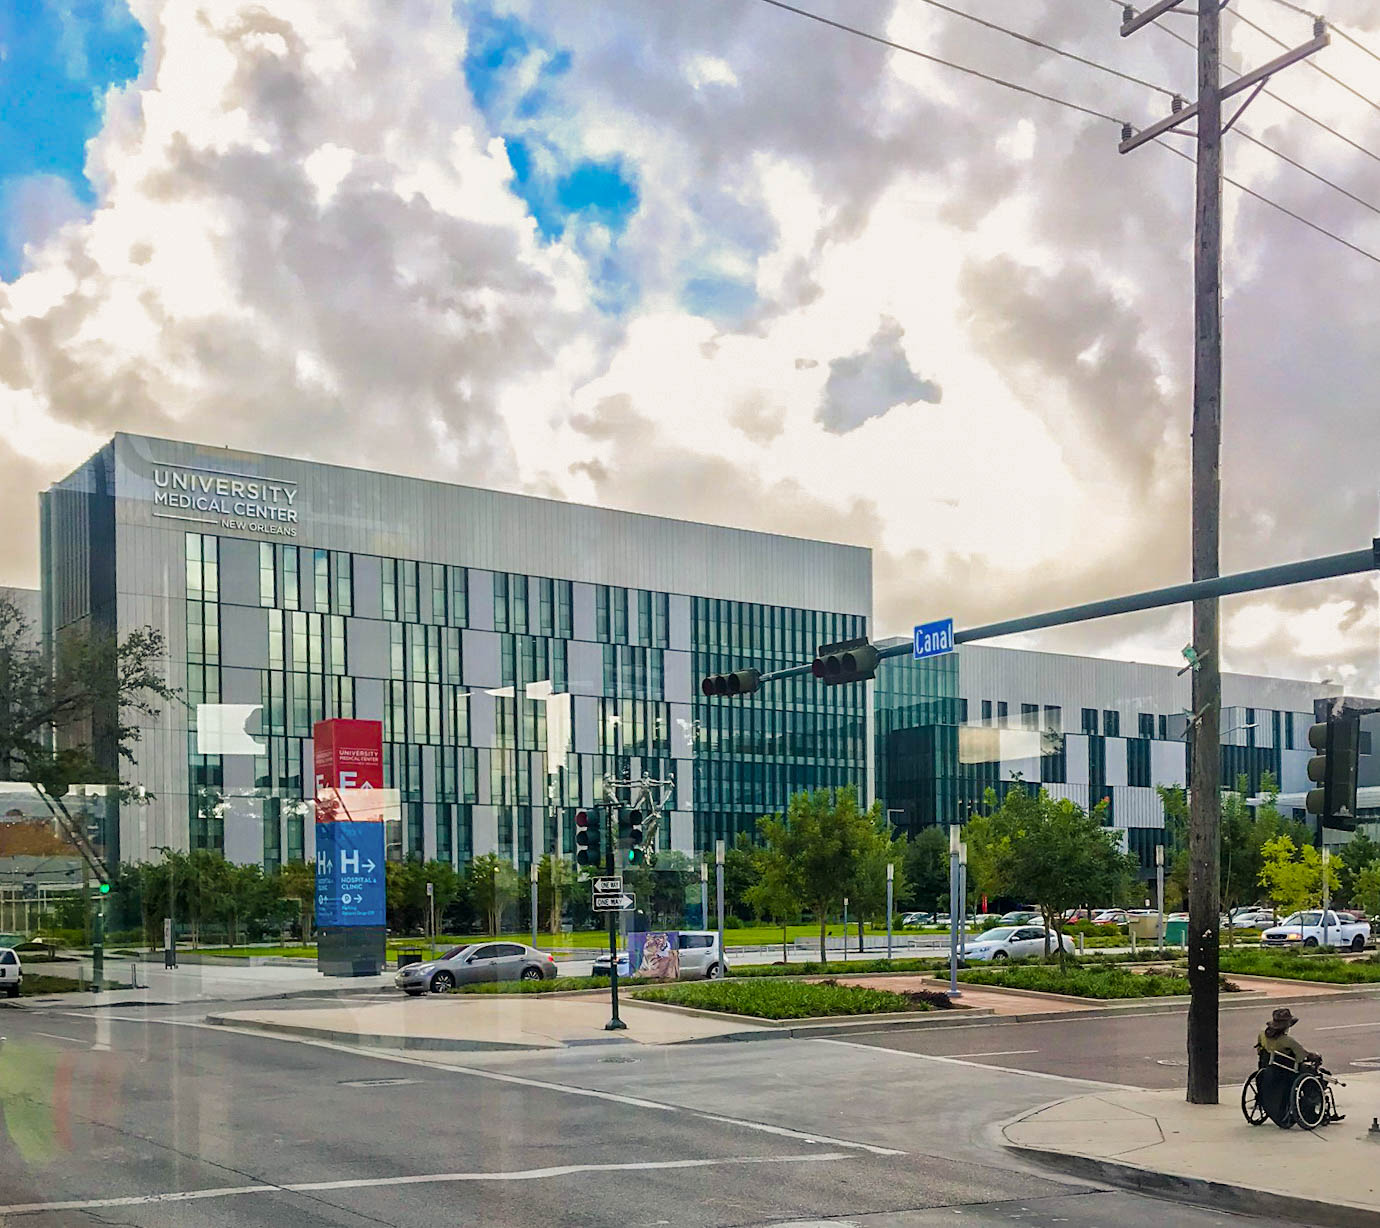 Lsu health sciences center new orleans requirements